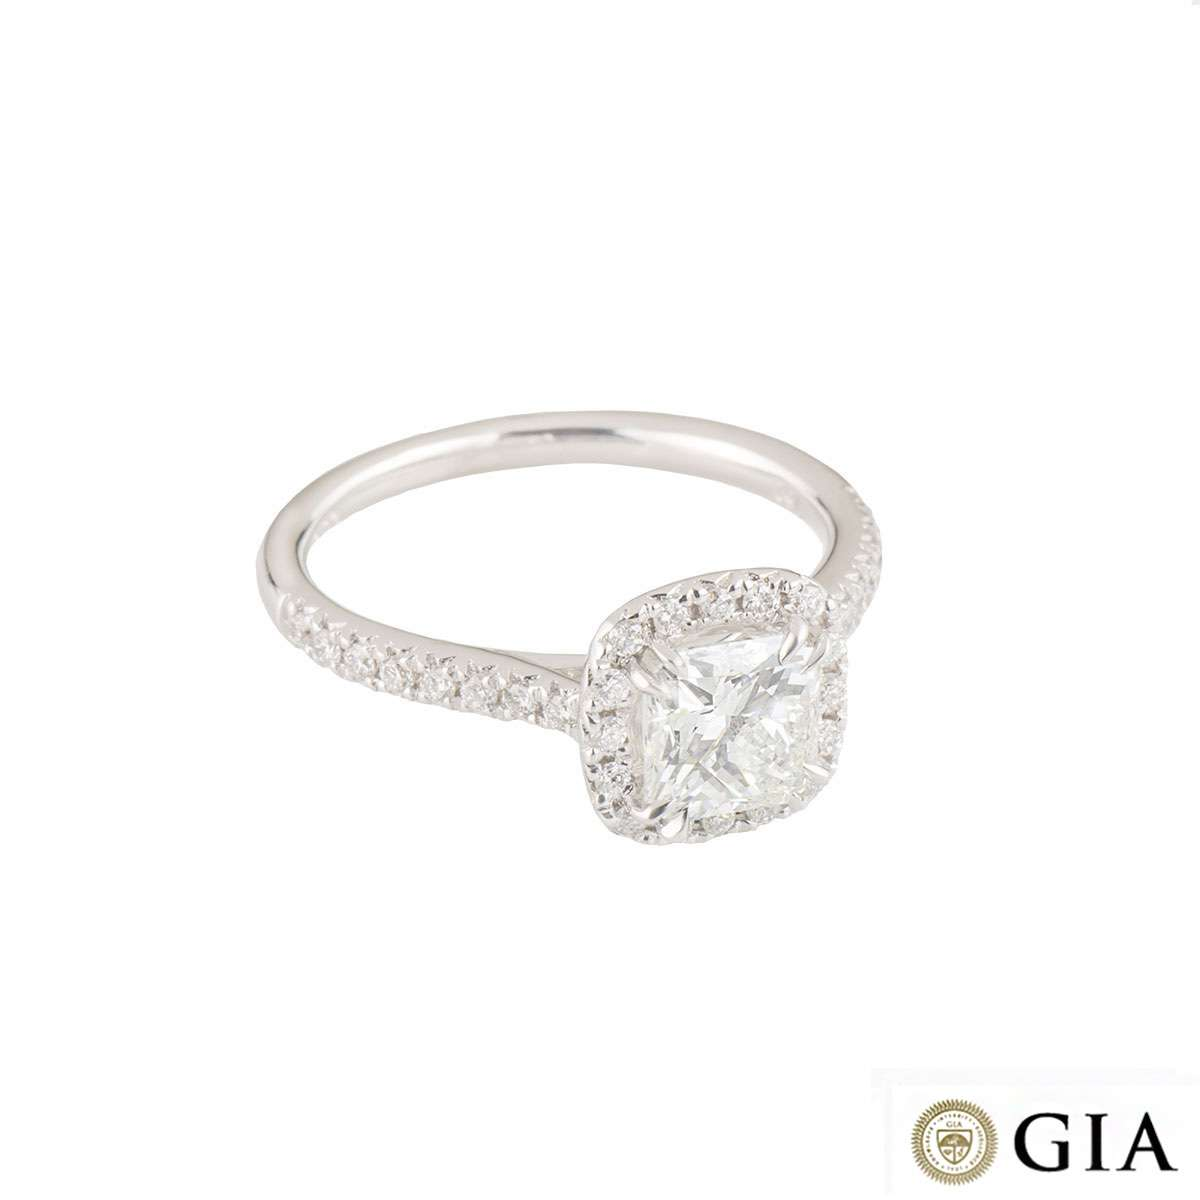 Radiant Cut Diamond Ring 1.14ct F/VS2